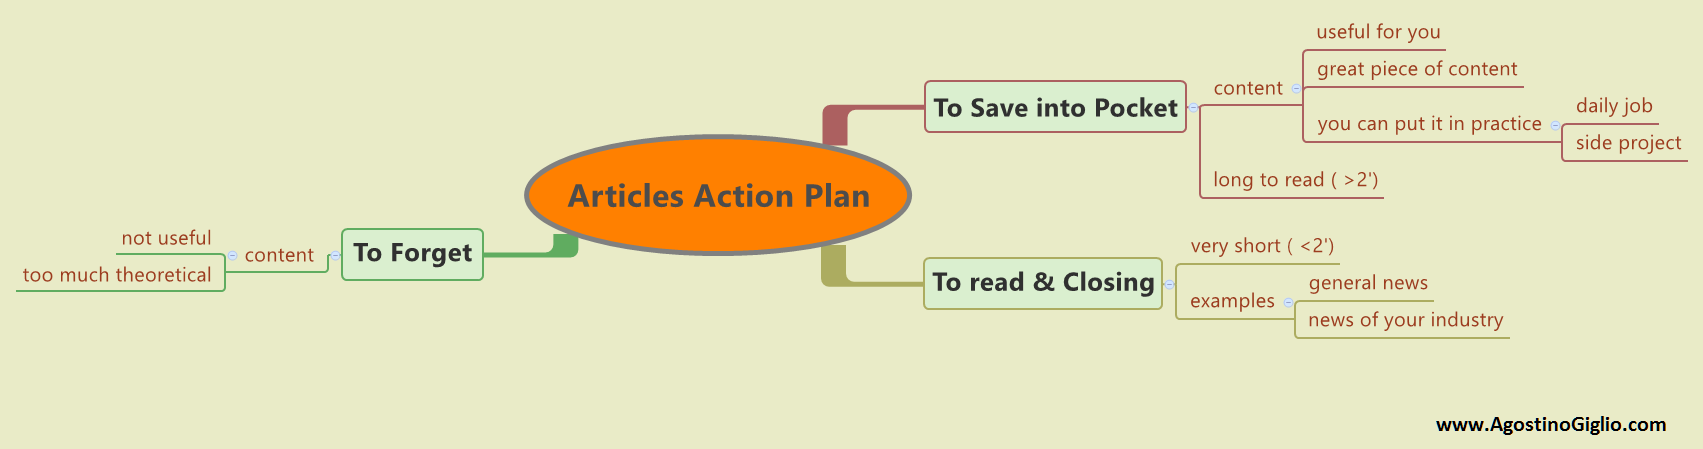 articles-action-plan